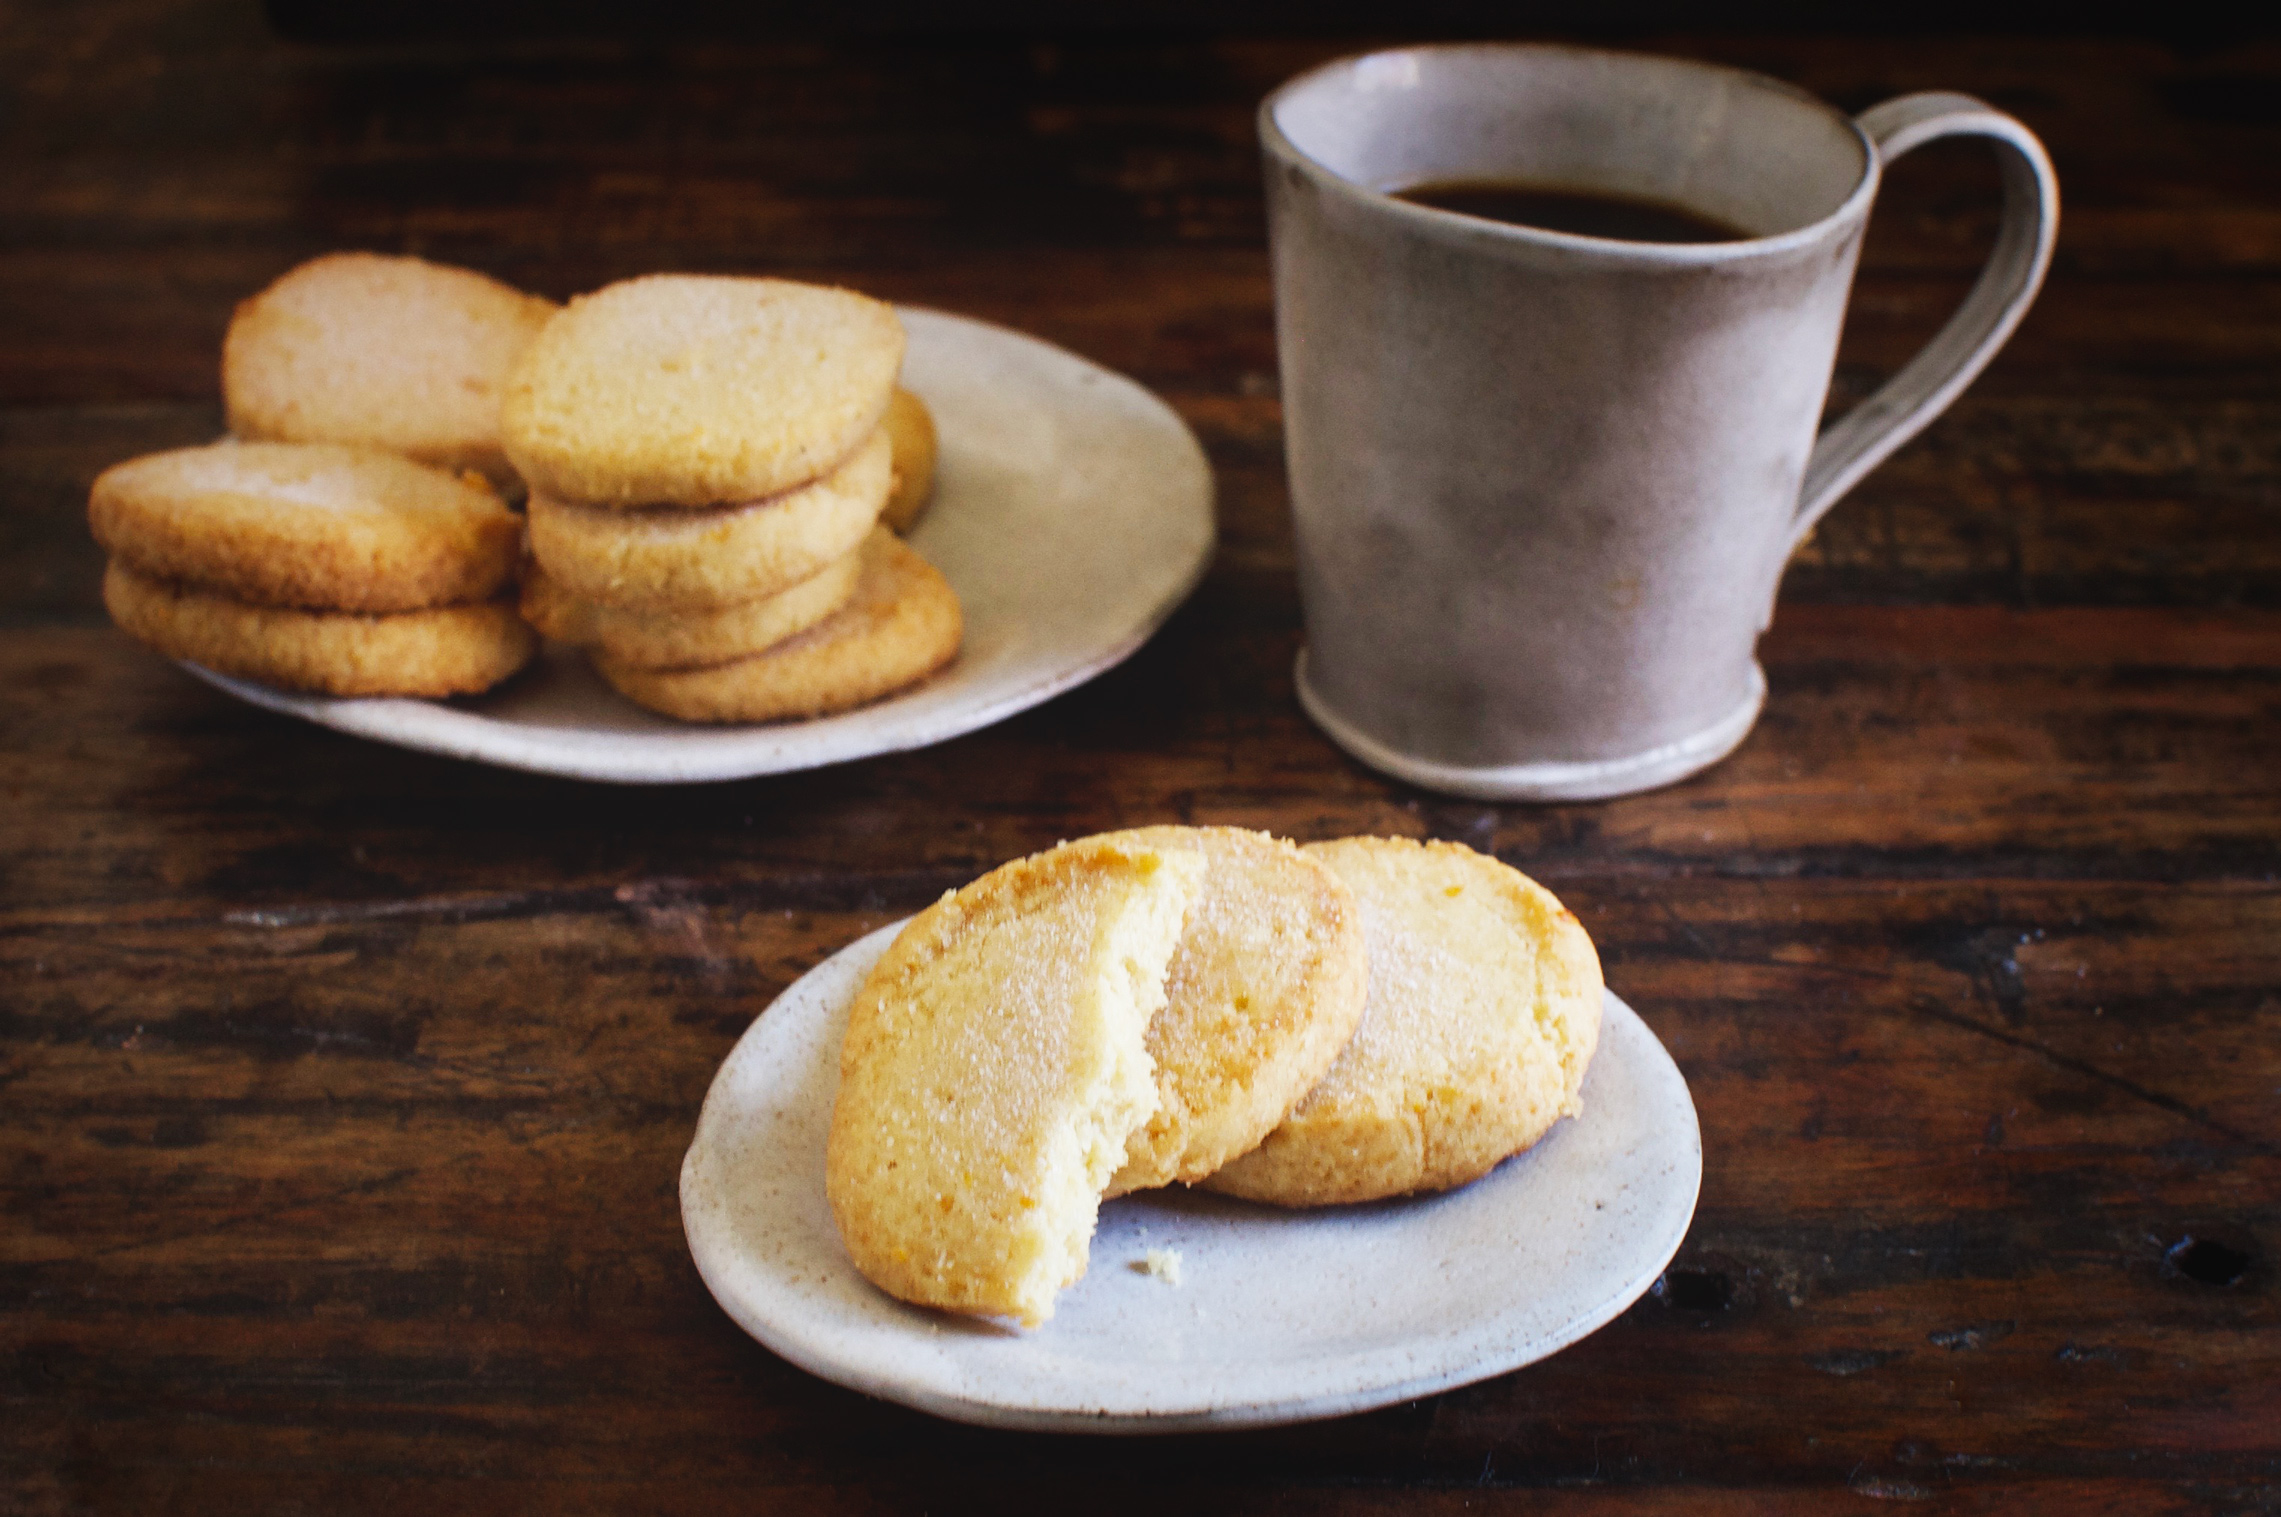 Low-Carb Sugar Cookies on a plate. One has bite taken out.